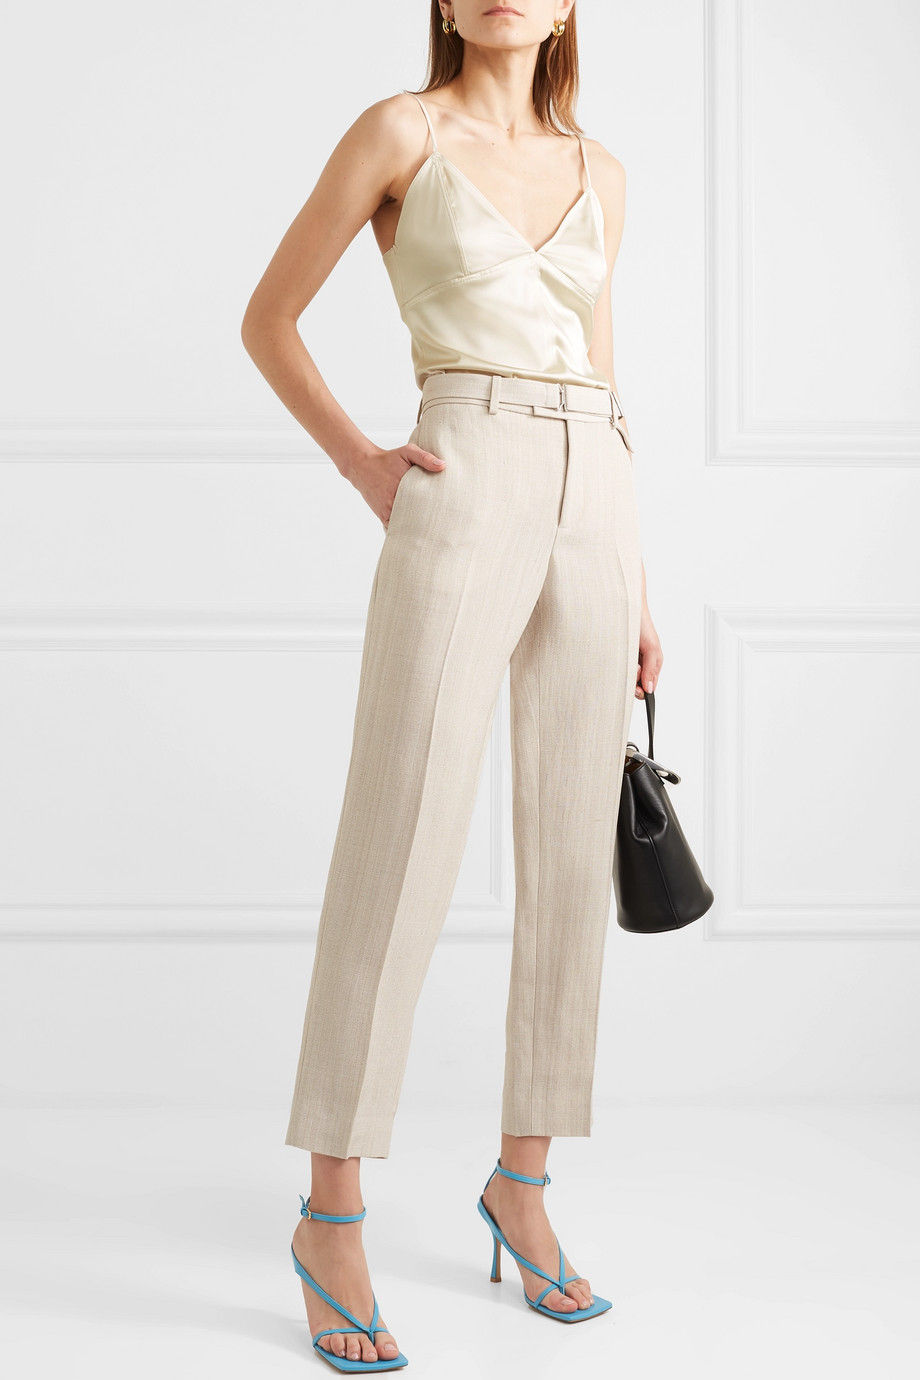 Bottega Veneta Stretch-silk satin camisole